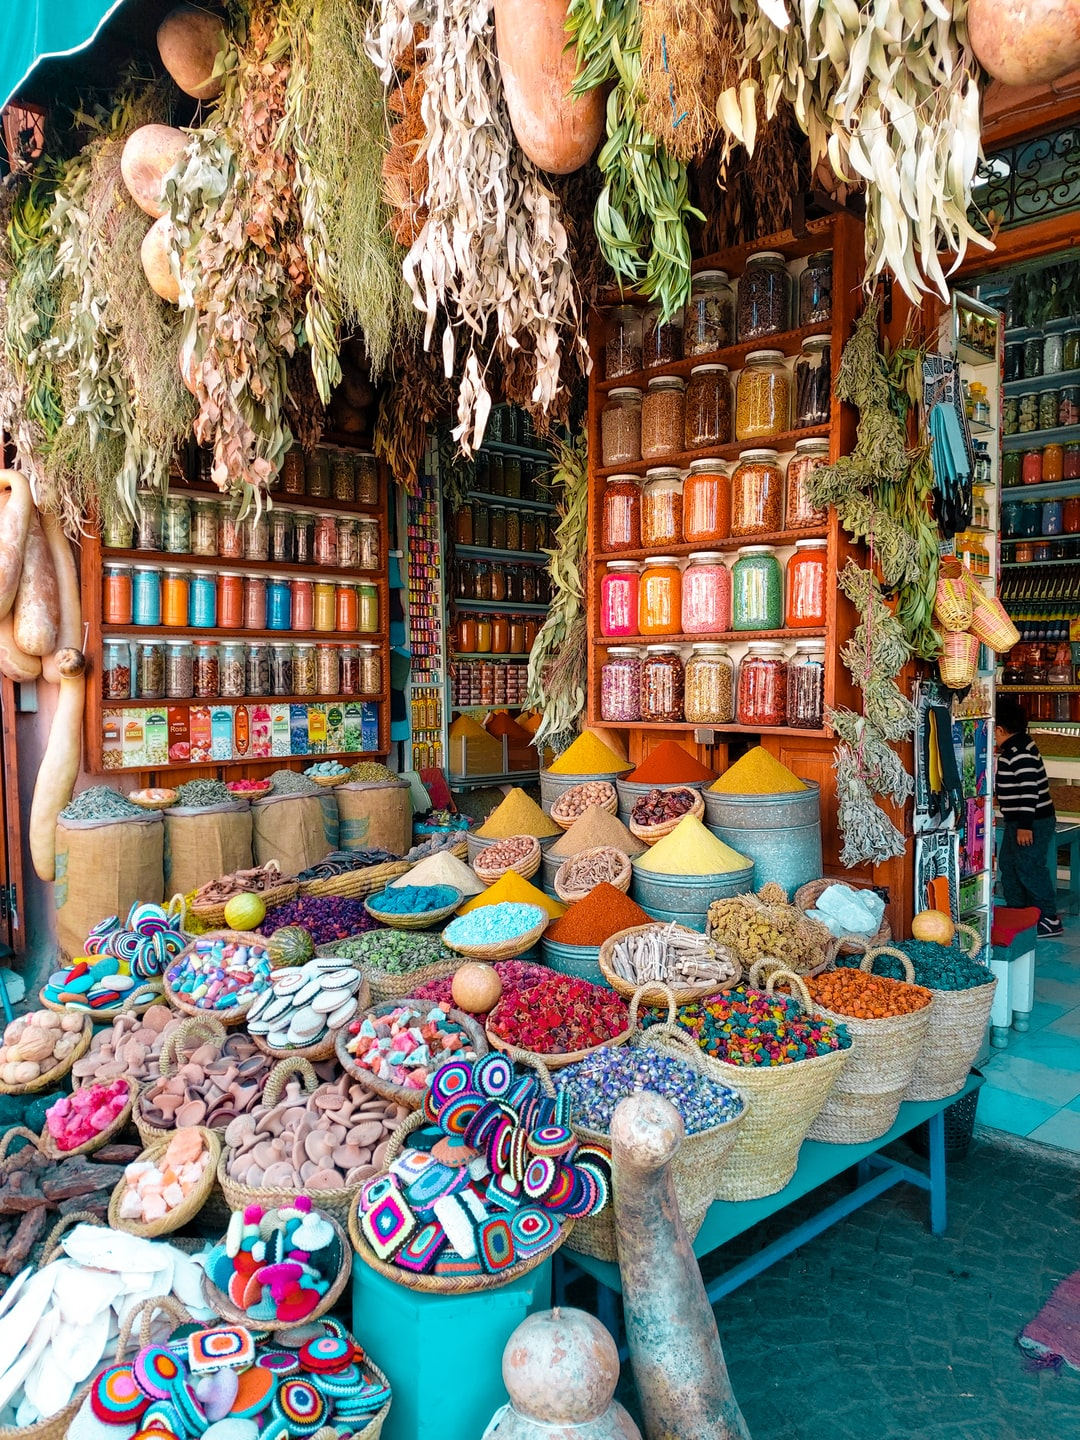 The smell of fresh spices is enough to open up your appetite after a long walk in old medina 😋..